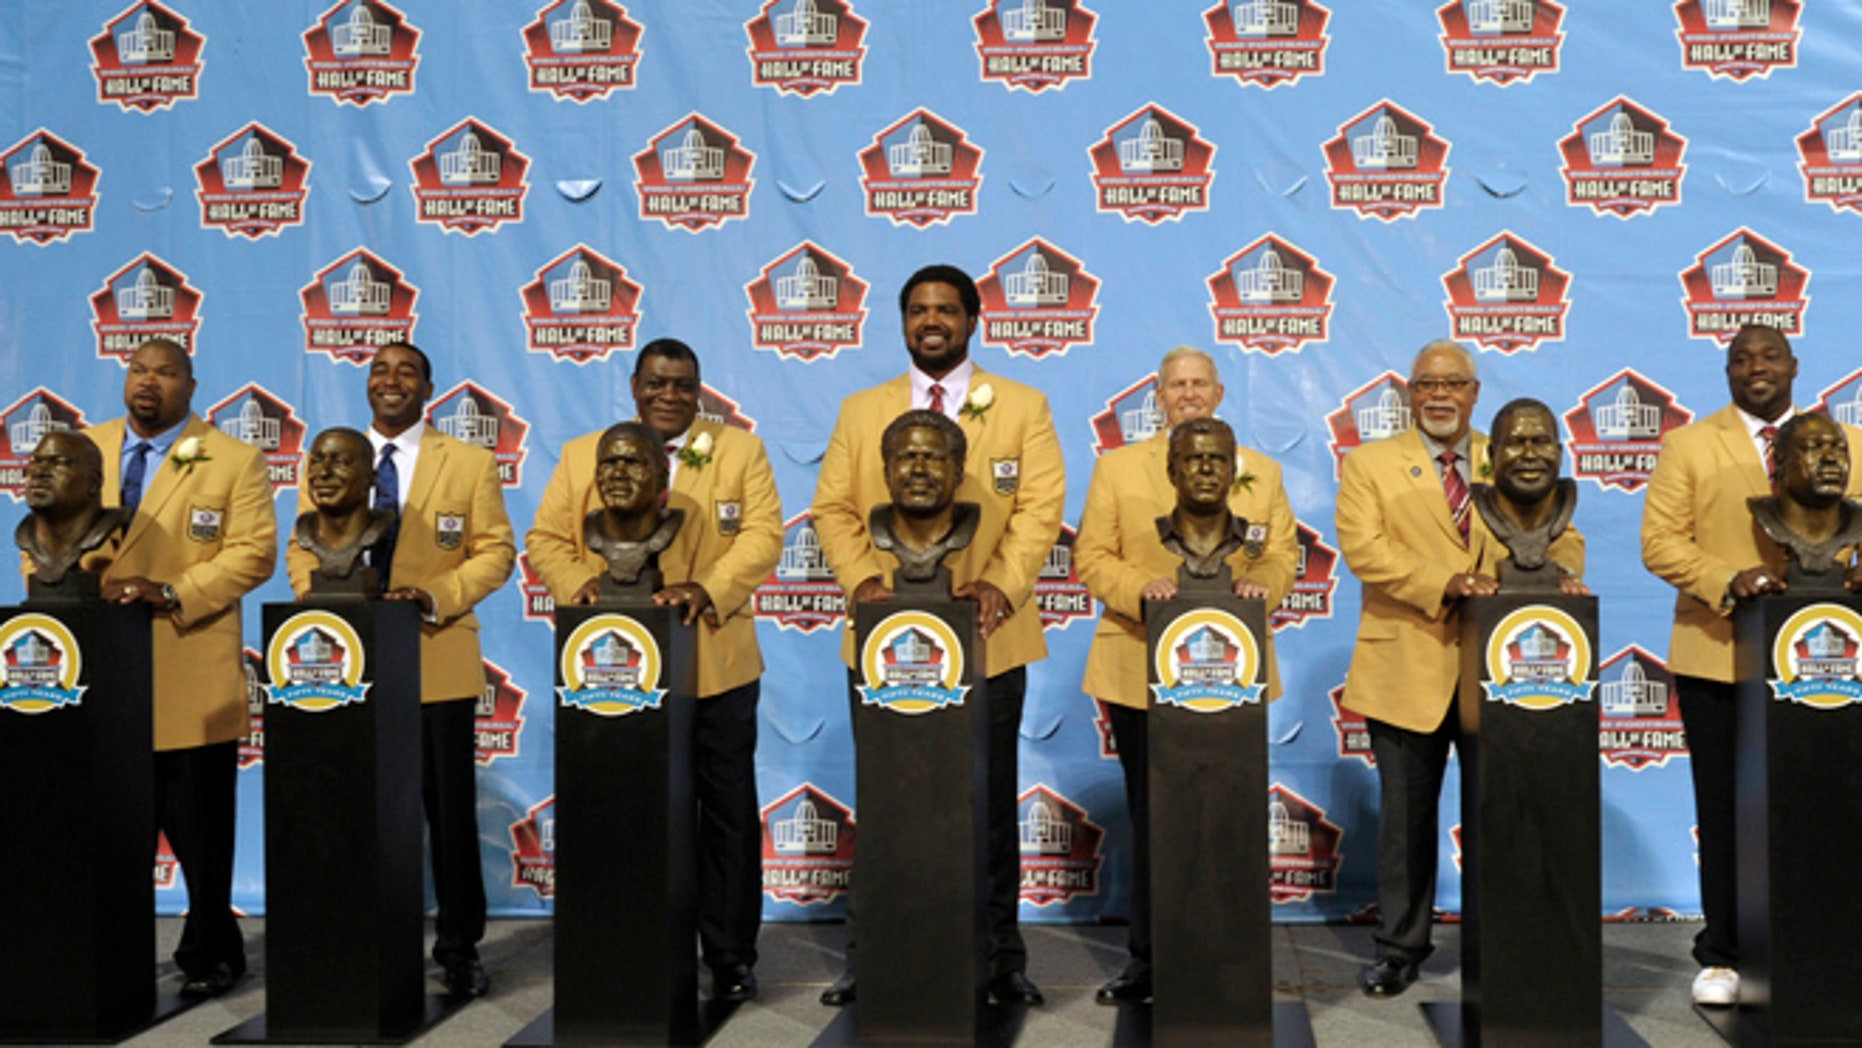 Aug. 3, 2013: Hall of Fame inductees, from left, Larry Allen, Cris Carter, Dave Robinson, Jonathan Ogden, Bill Parcells, Curley Culp and Warren Sapp pose with their bronze busts during the 2013 Pro Football Hall of Fame Induction Ceremony in Canton, Ohio.